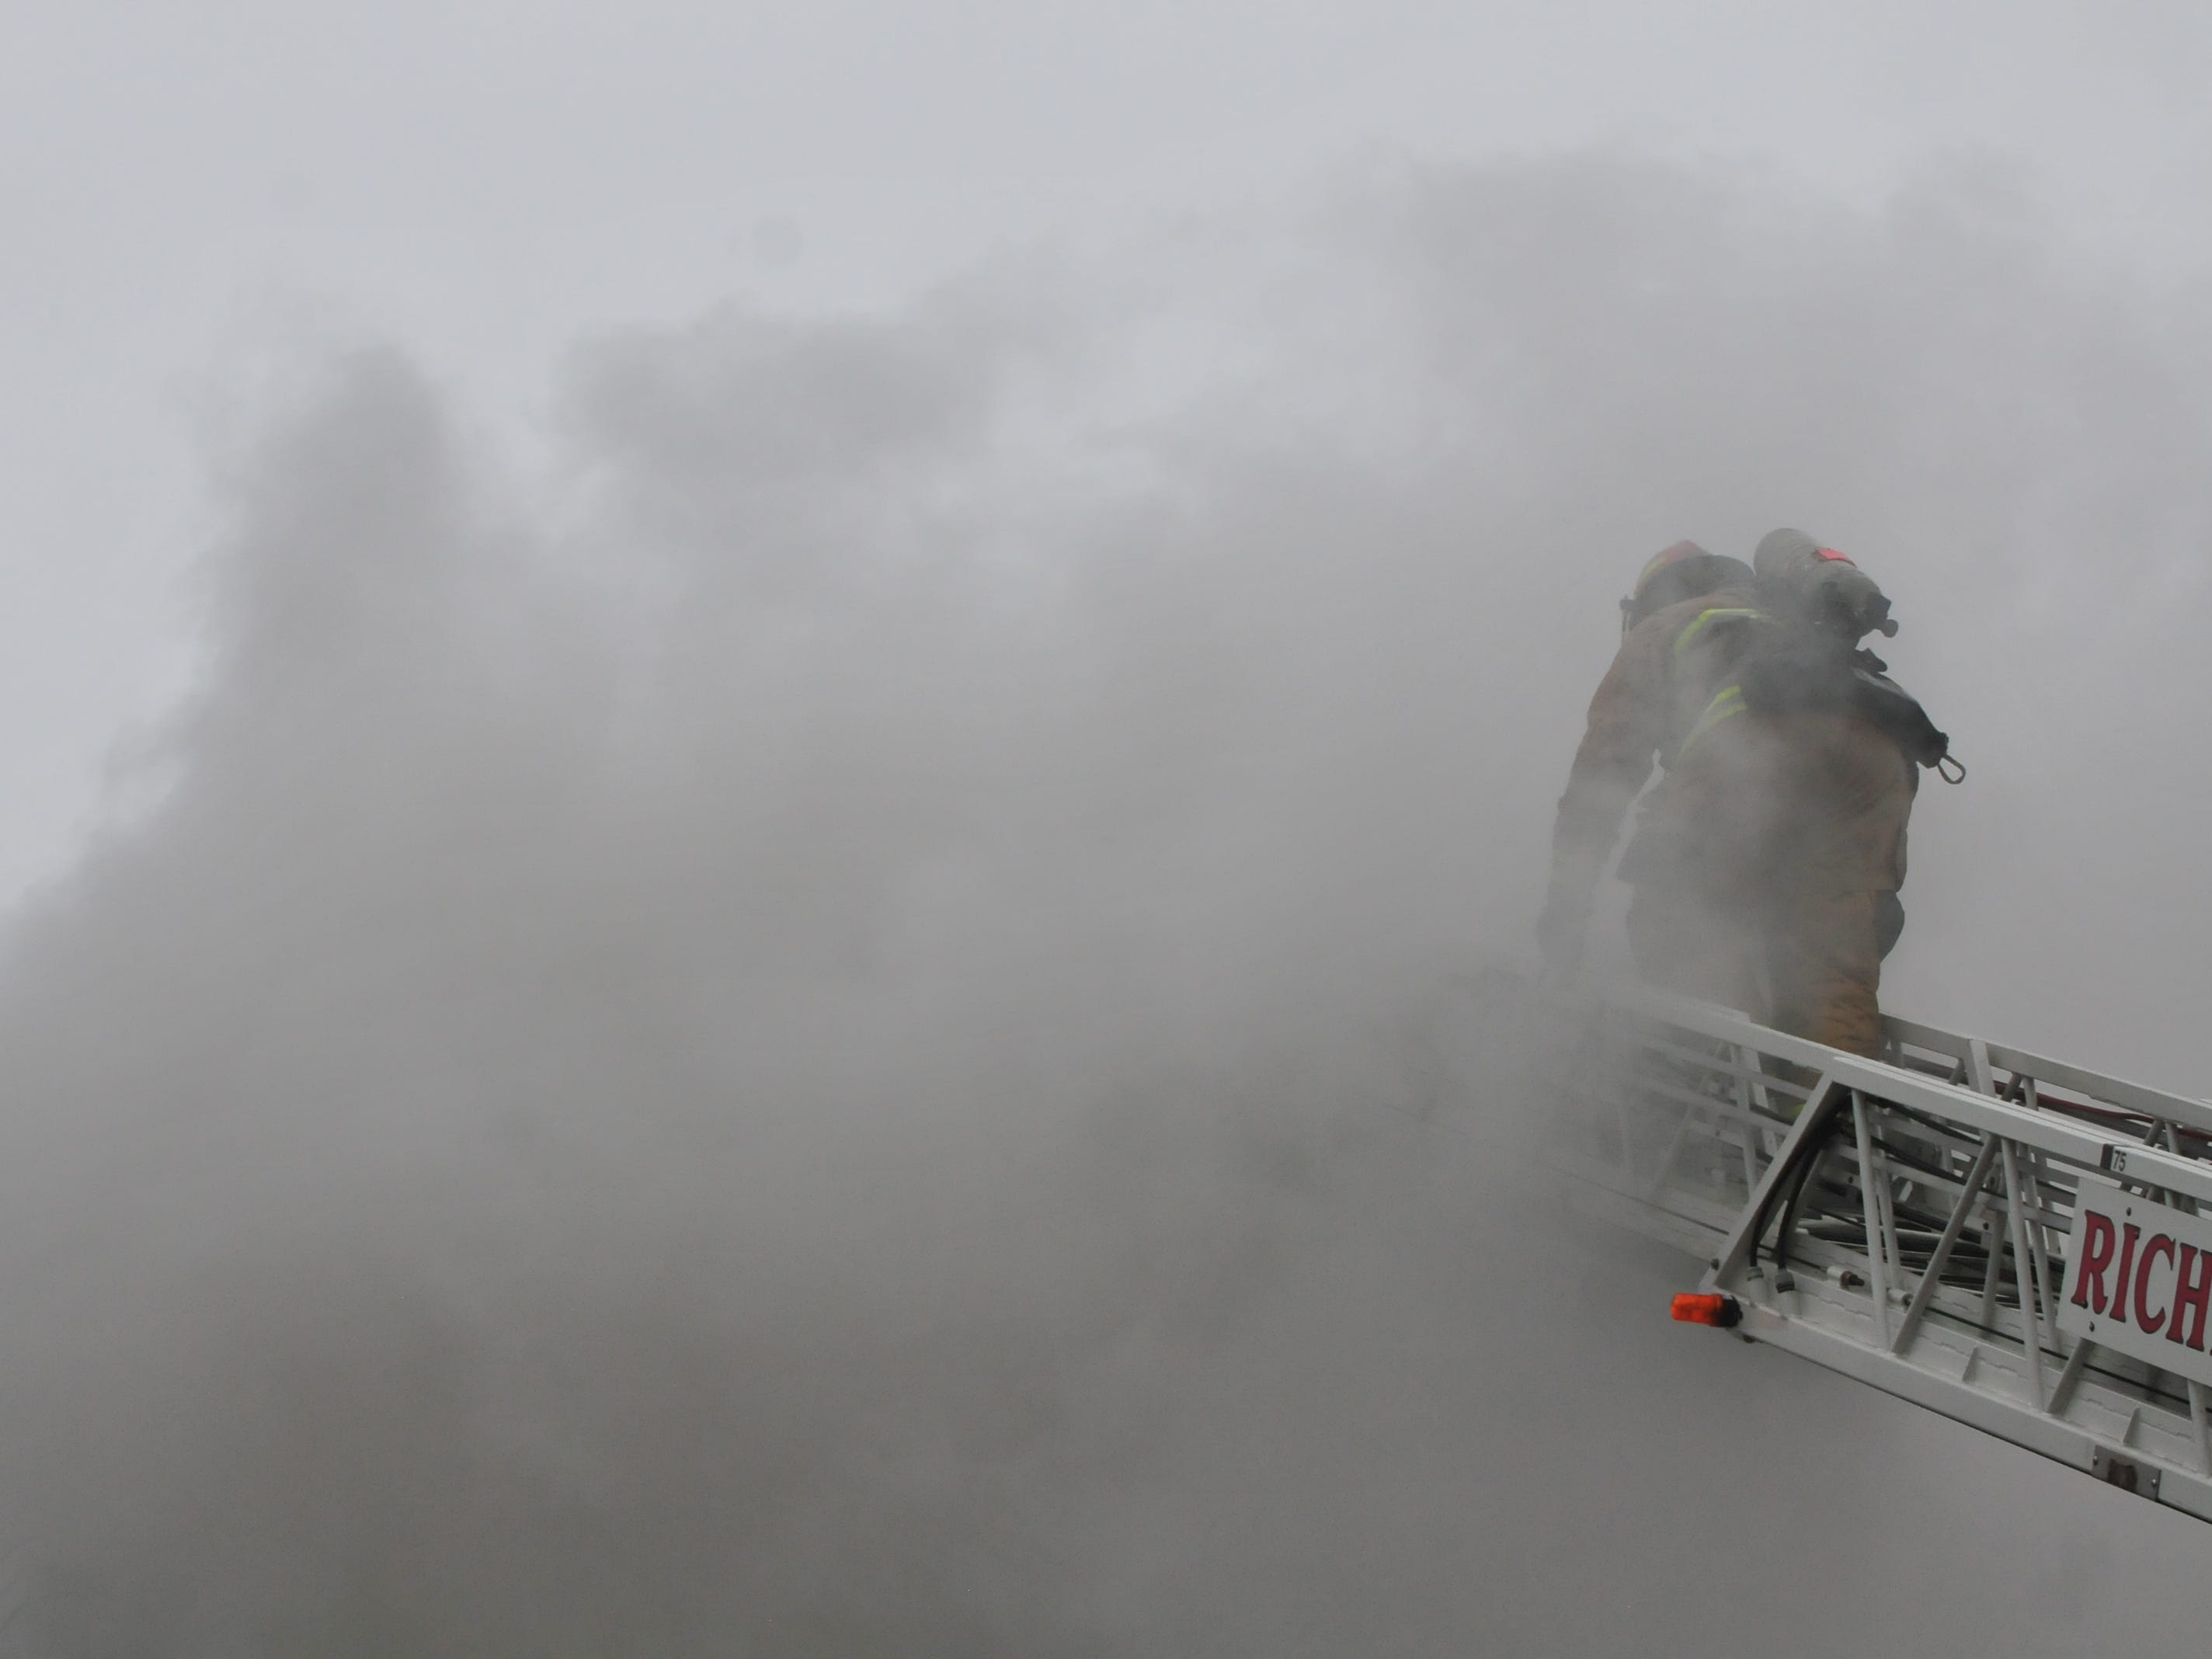 Richmond Fire Department personnel climbs into the smoke on an aerial ladder Wednesday.